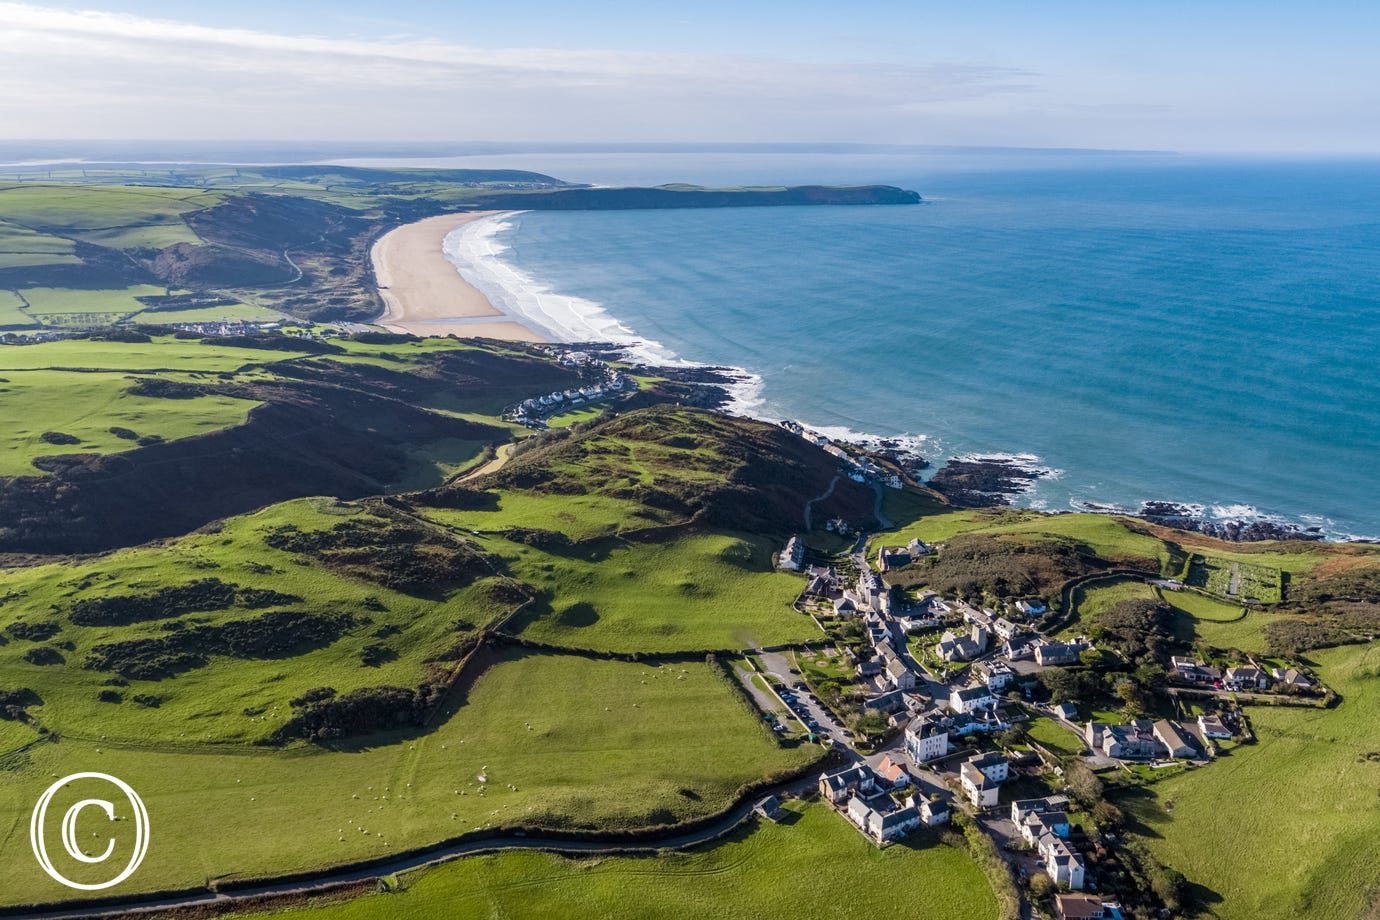 An aerial view of Mortehoe and Woolacombe beach